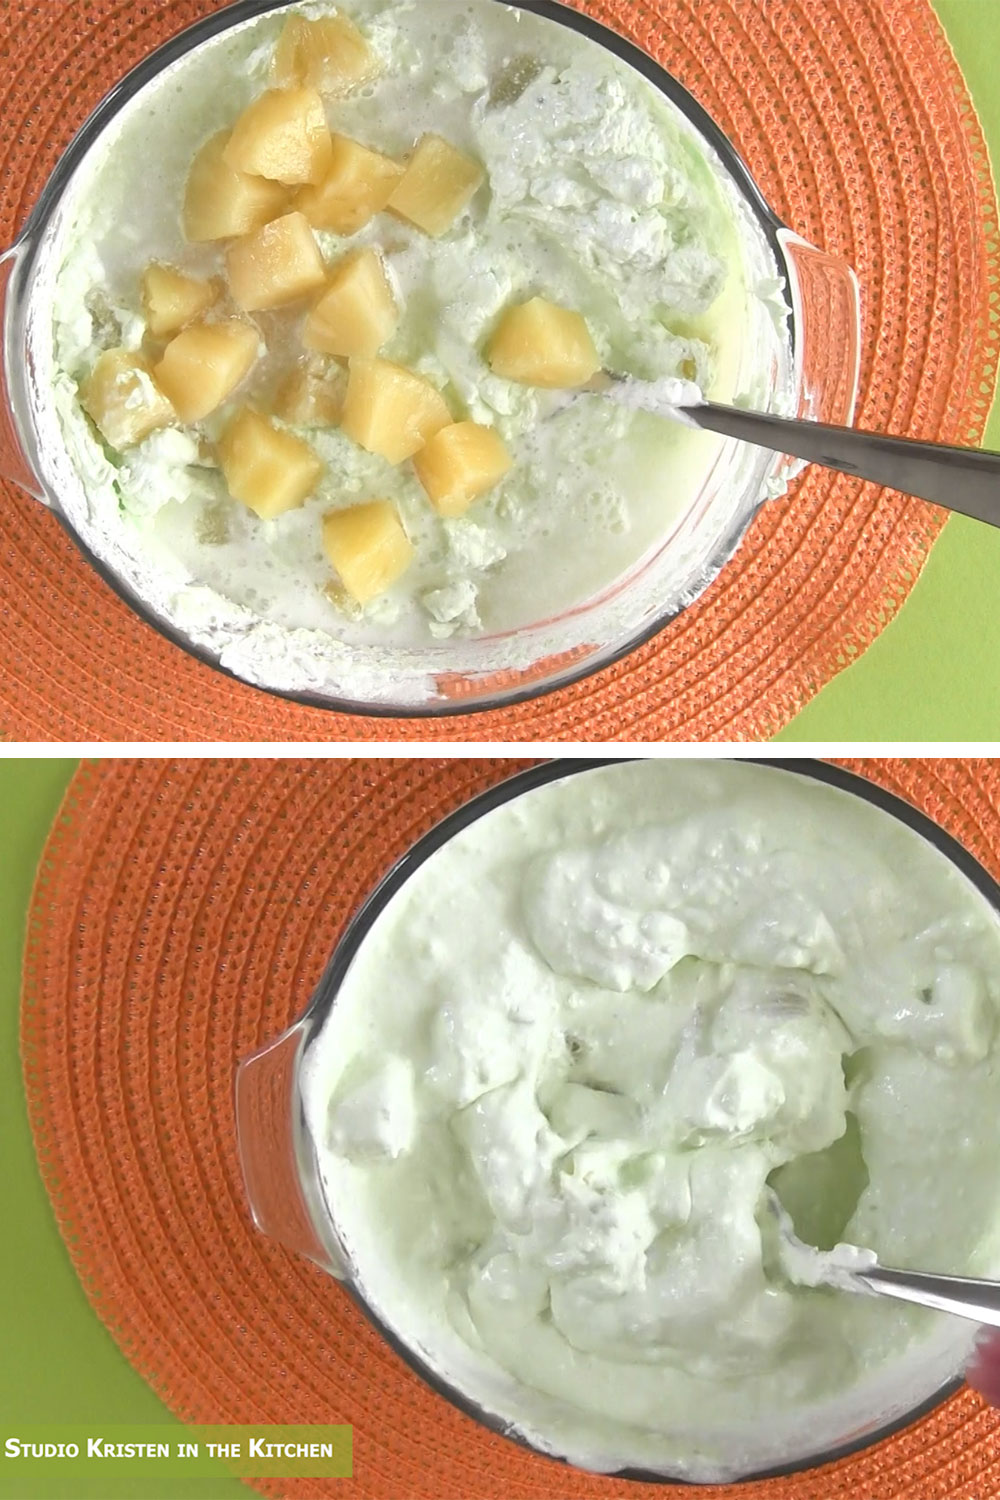 mixing pineapple into pistachio pudding fruit salad